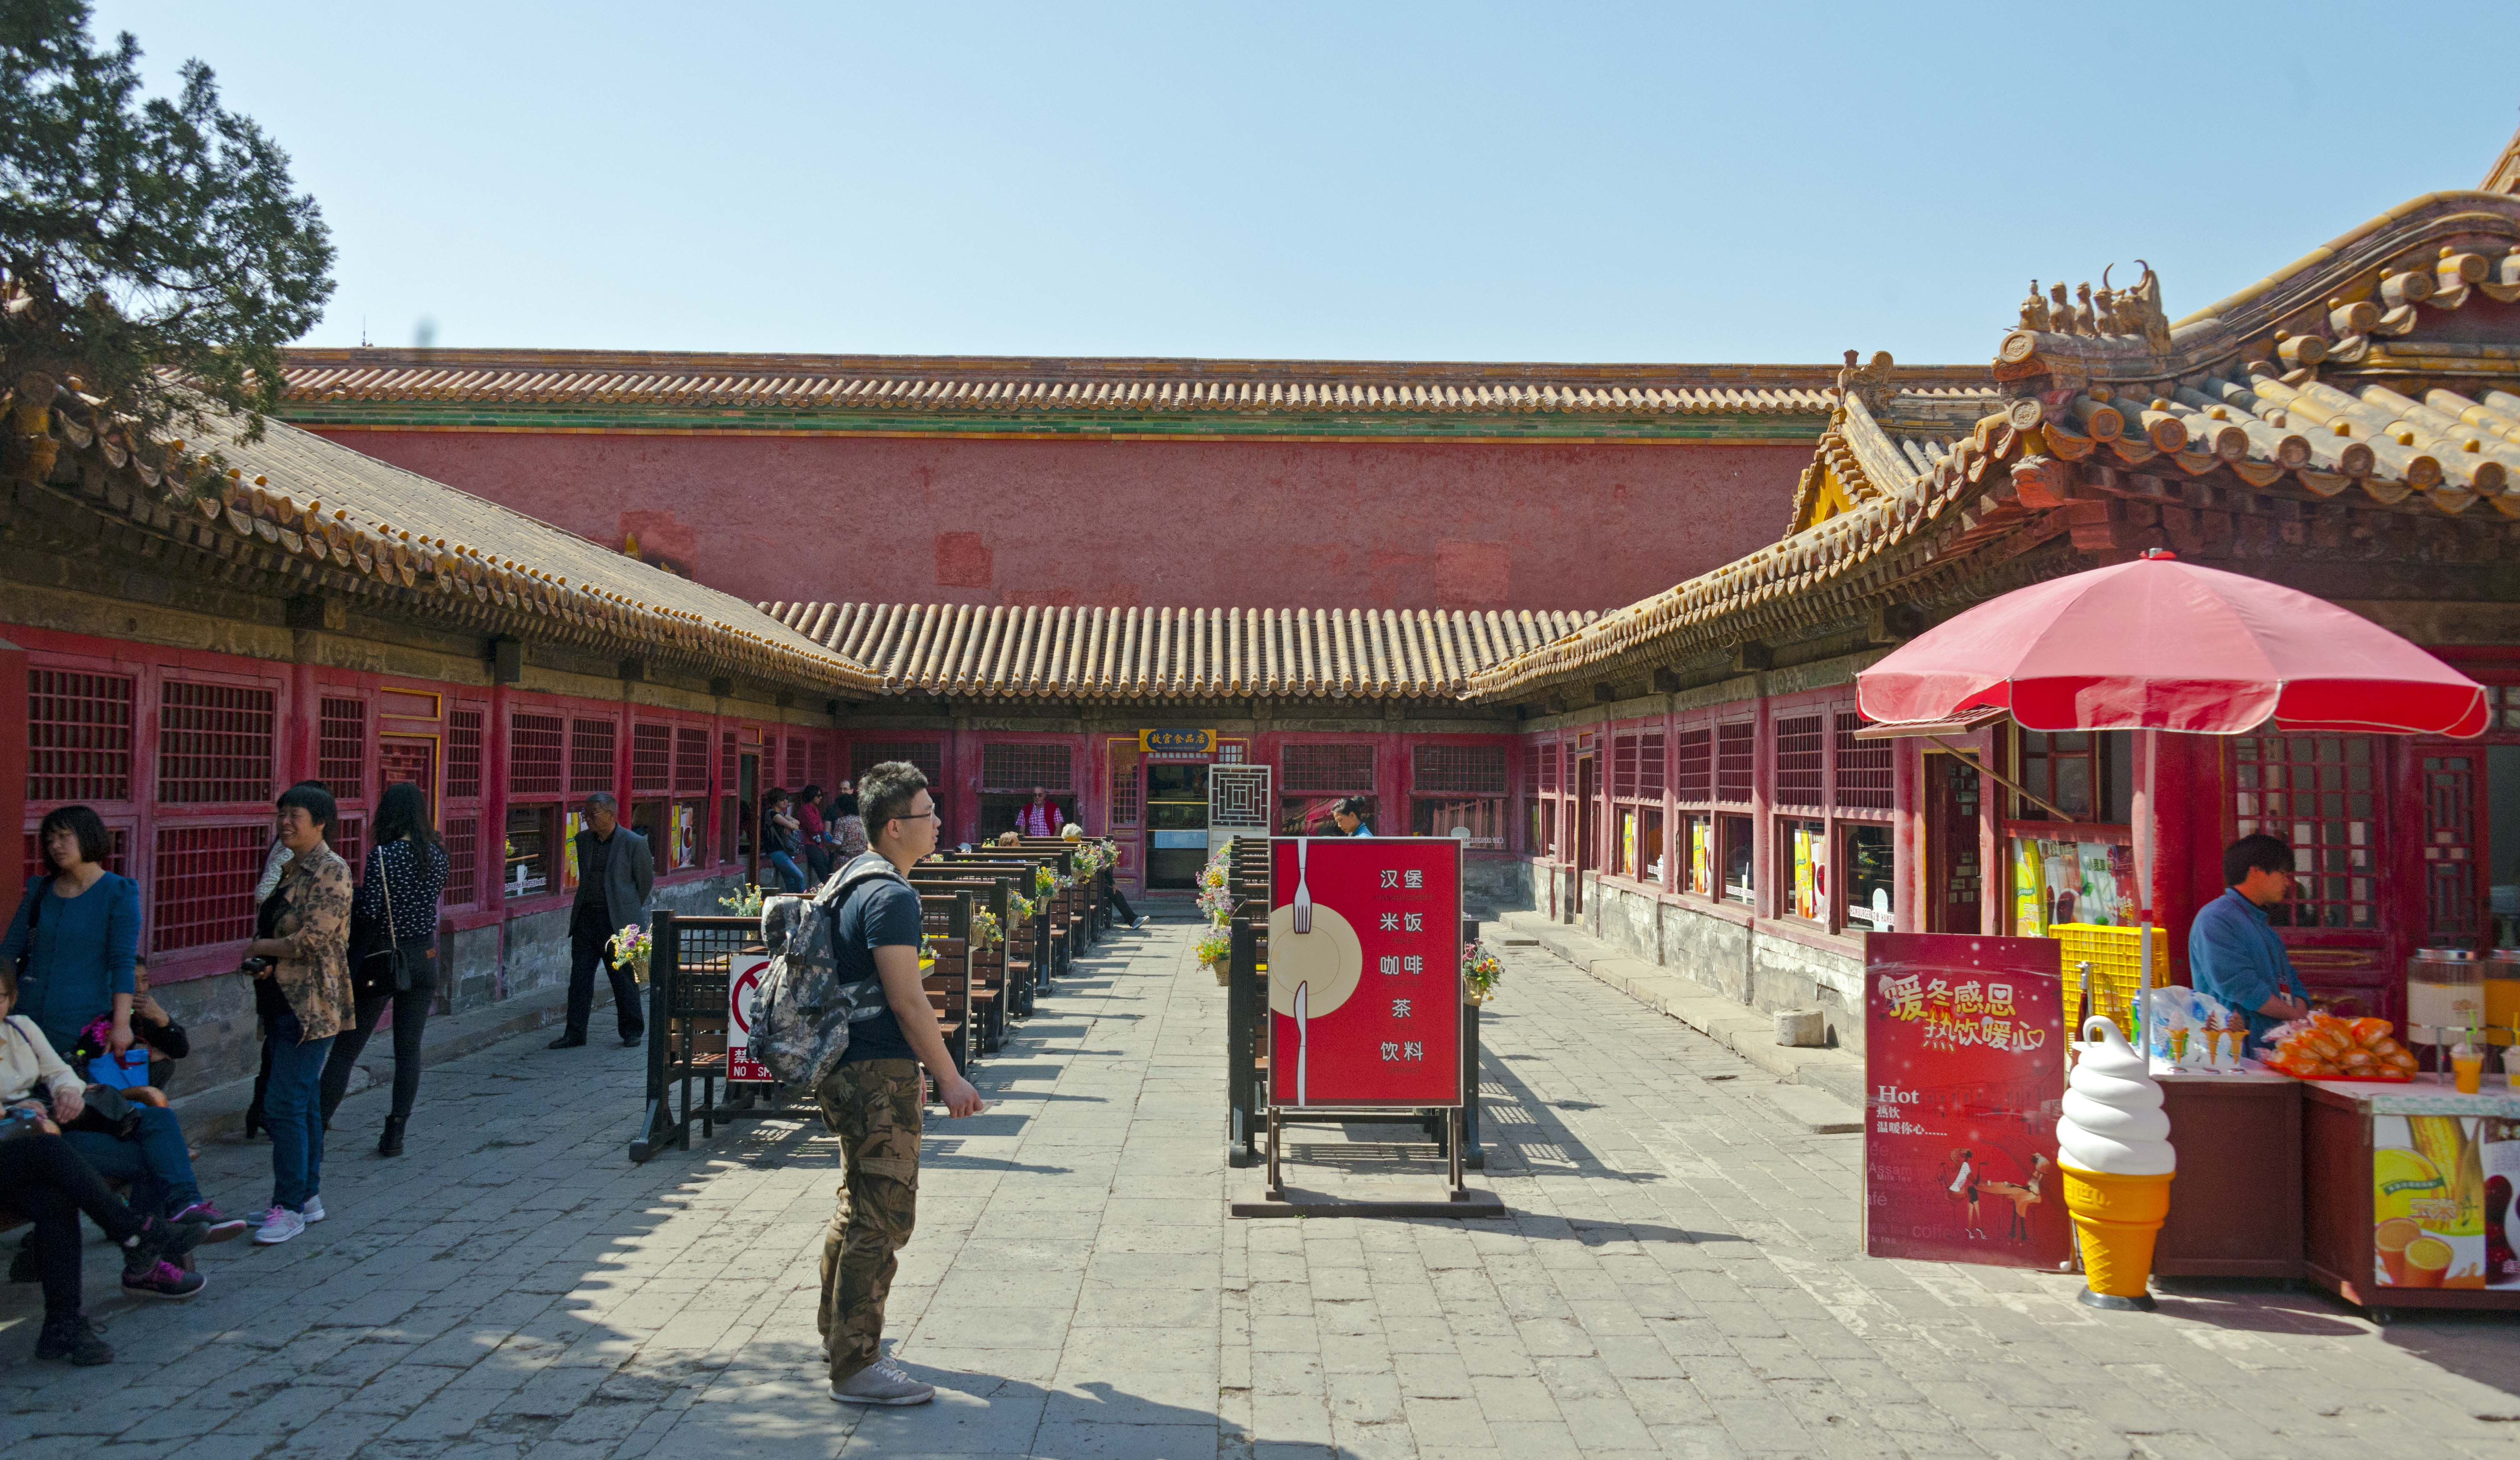 History of the forbidden city